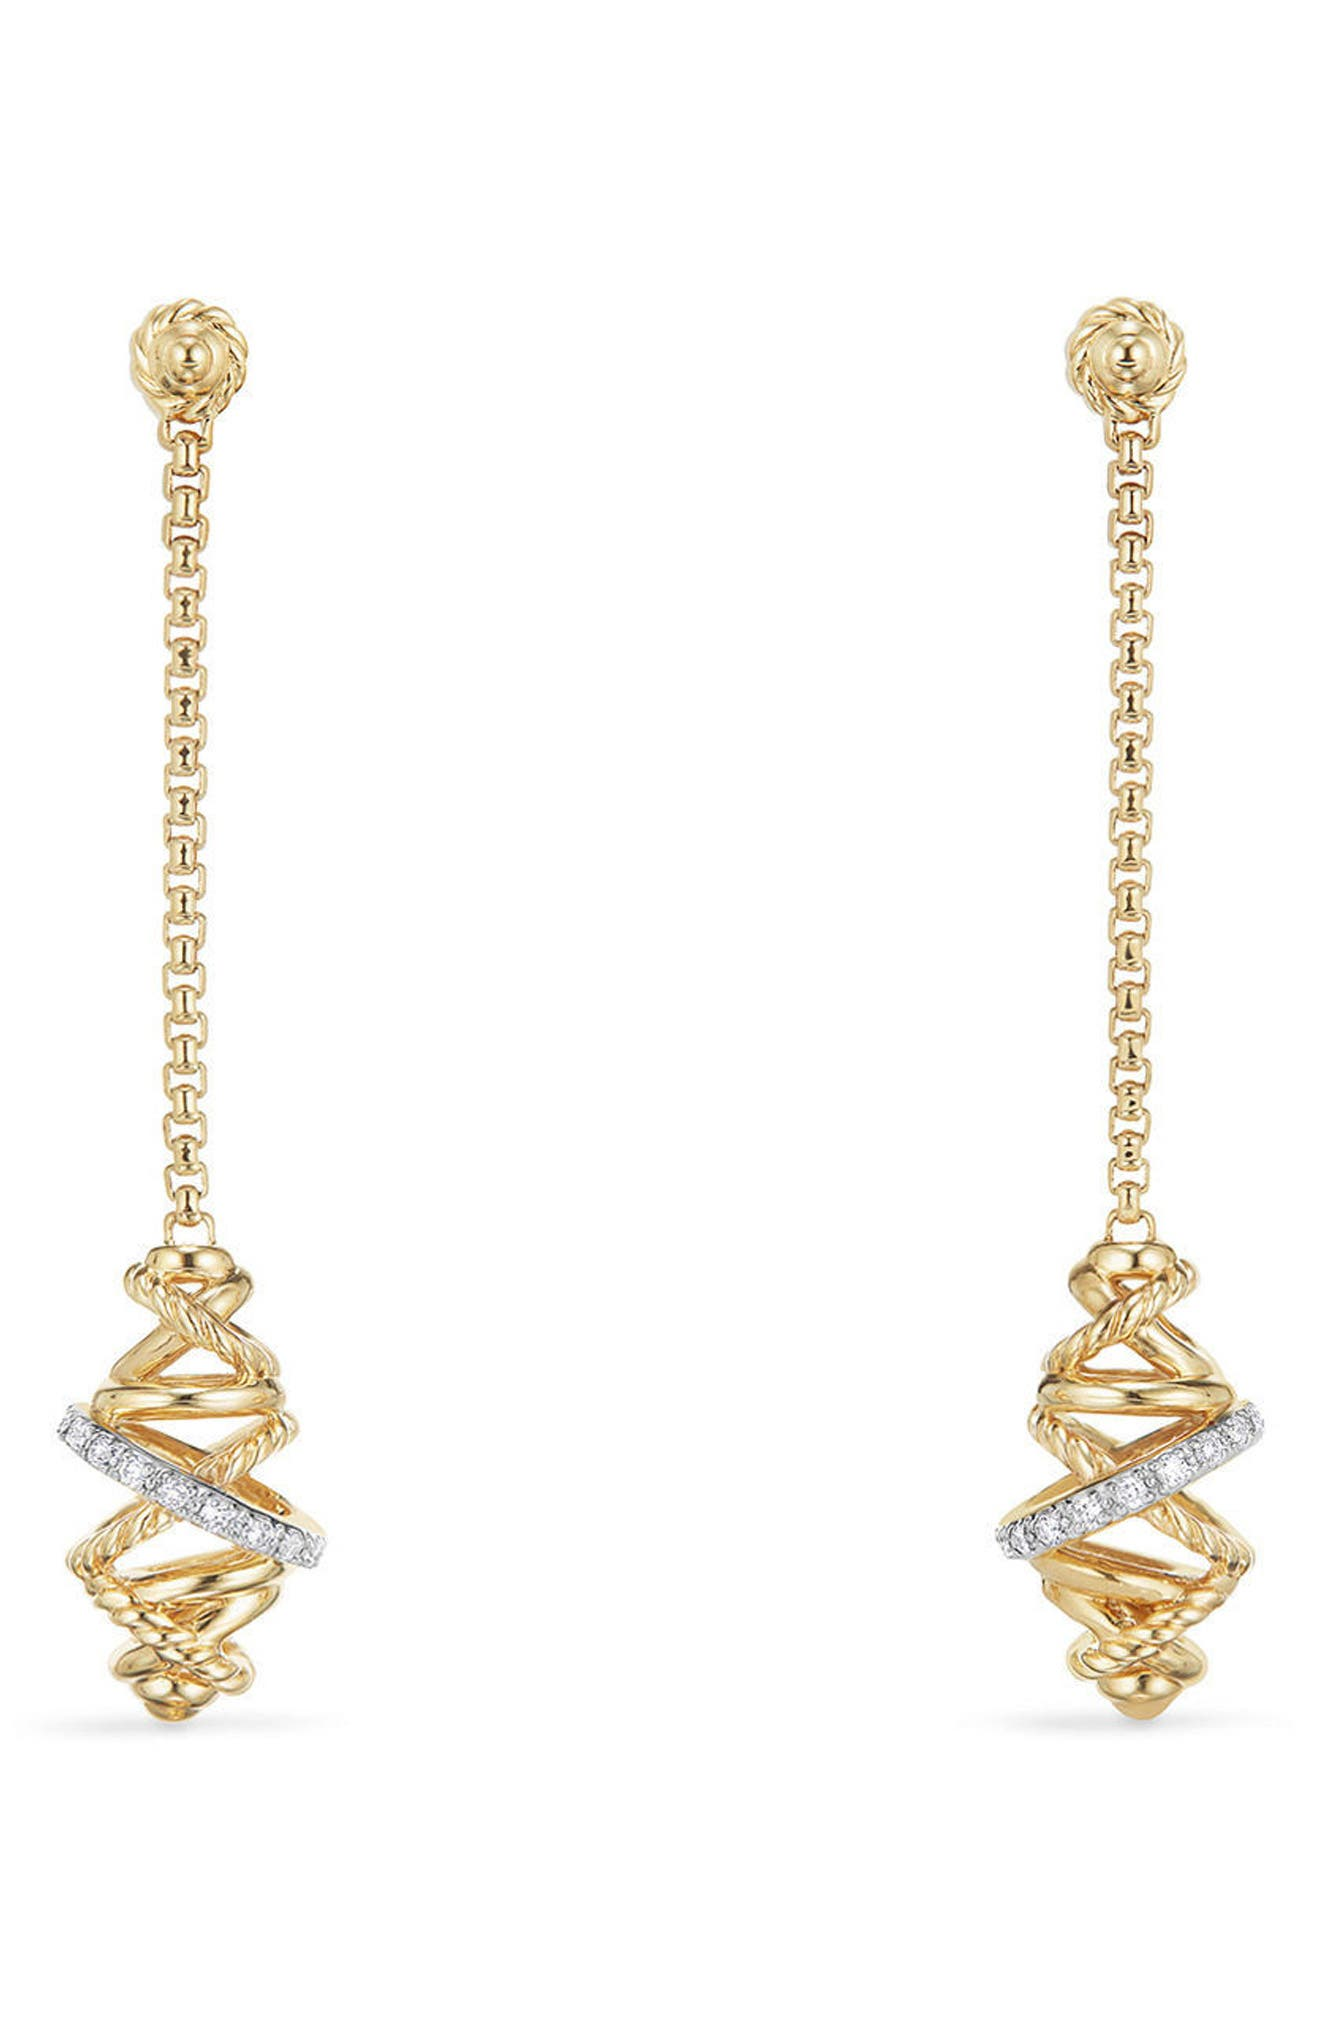 Crossover Chain Drop Earrings with Diamonds in 18K Gold,                             Main thumbnail 1, color,                             YELLOW GOLD/ DIAMOND